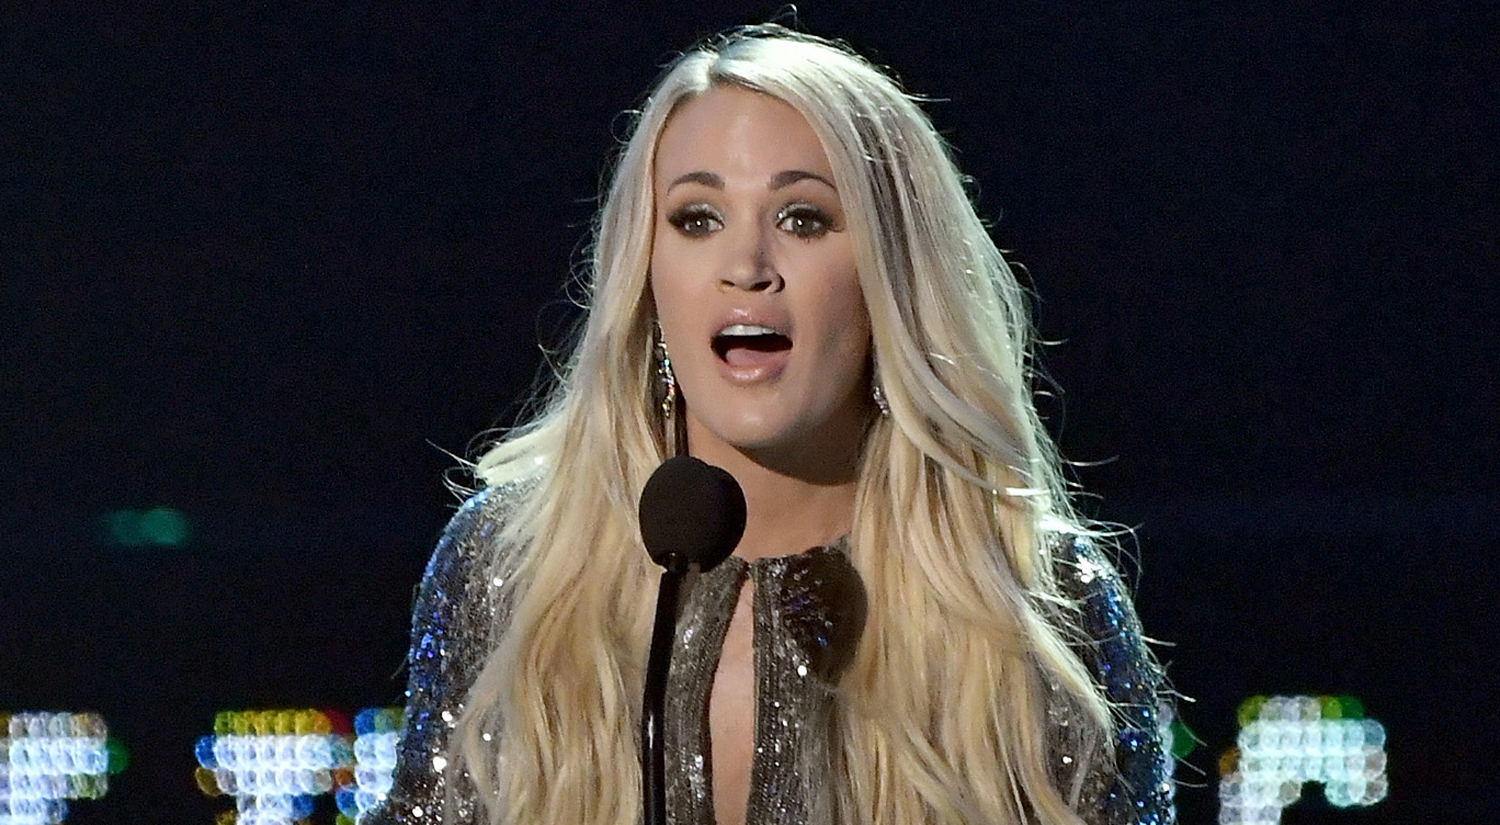 Carrie Underwood Calls Out Lack Of Female Artists On Country Radio